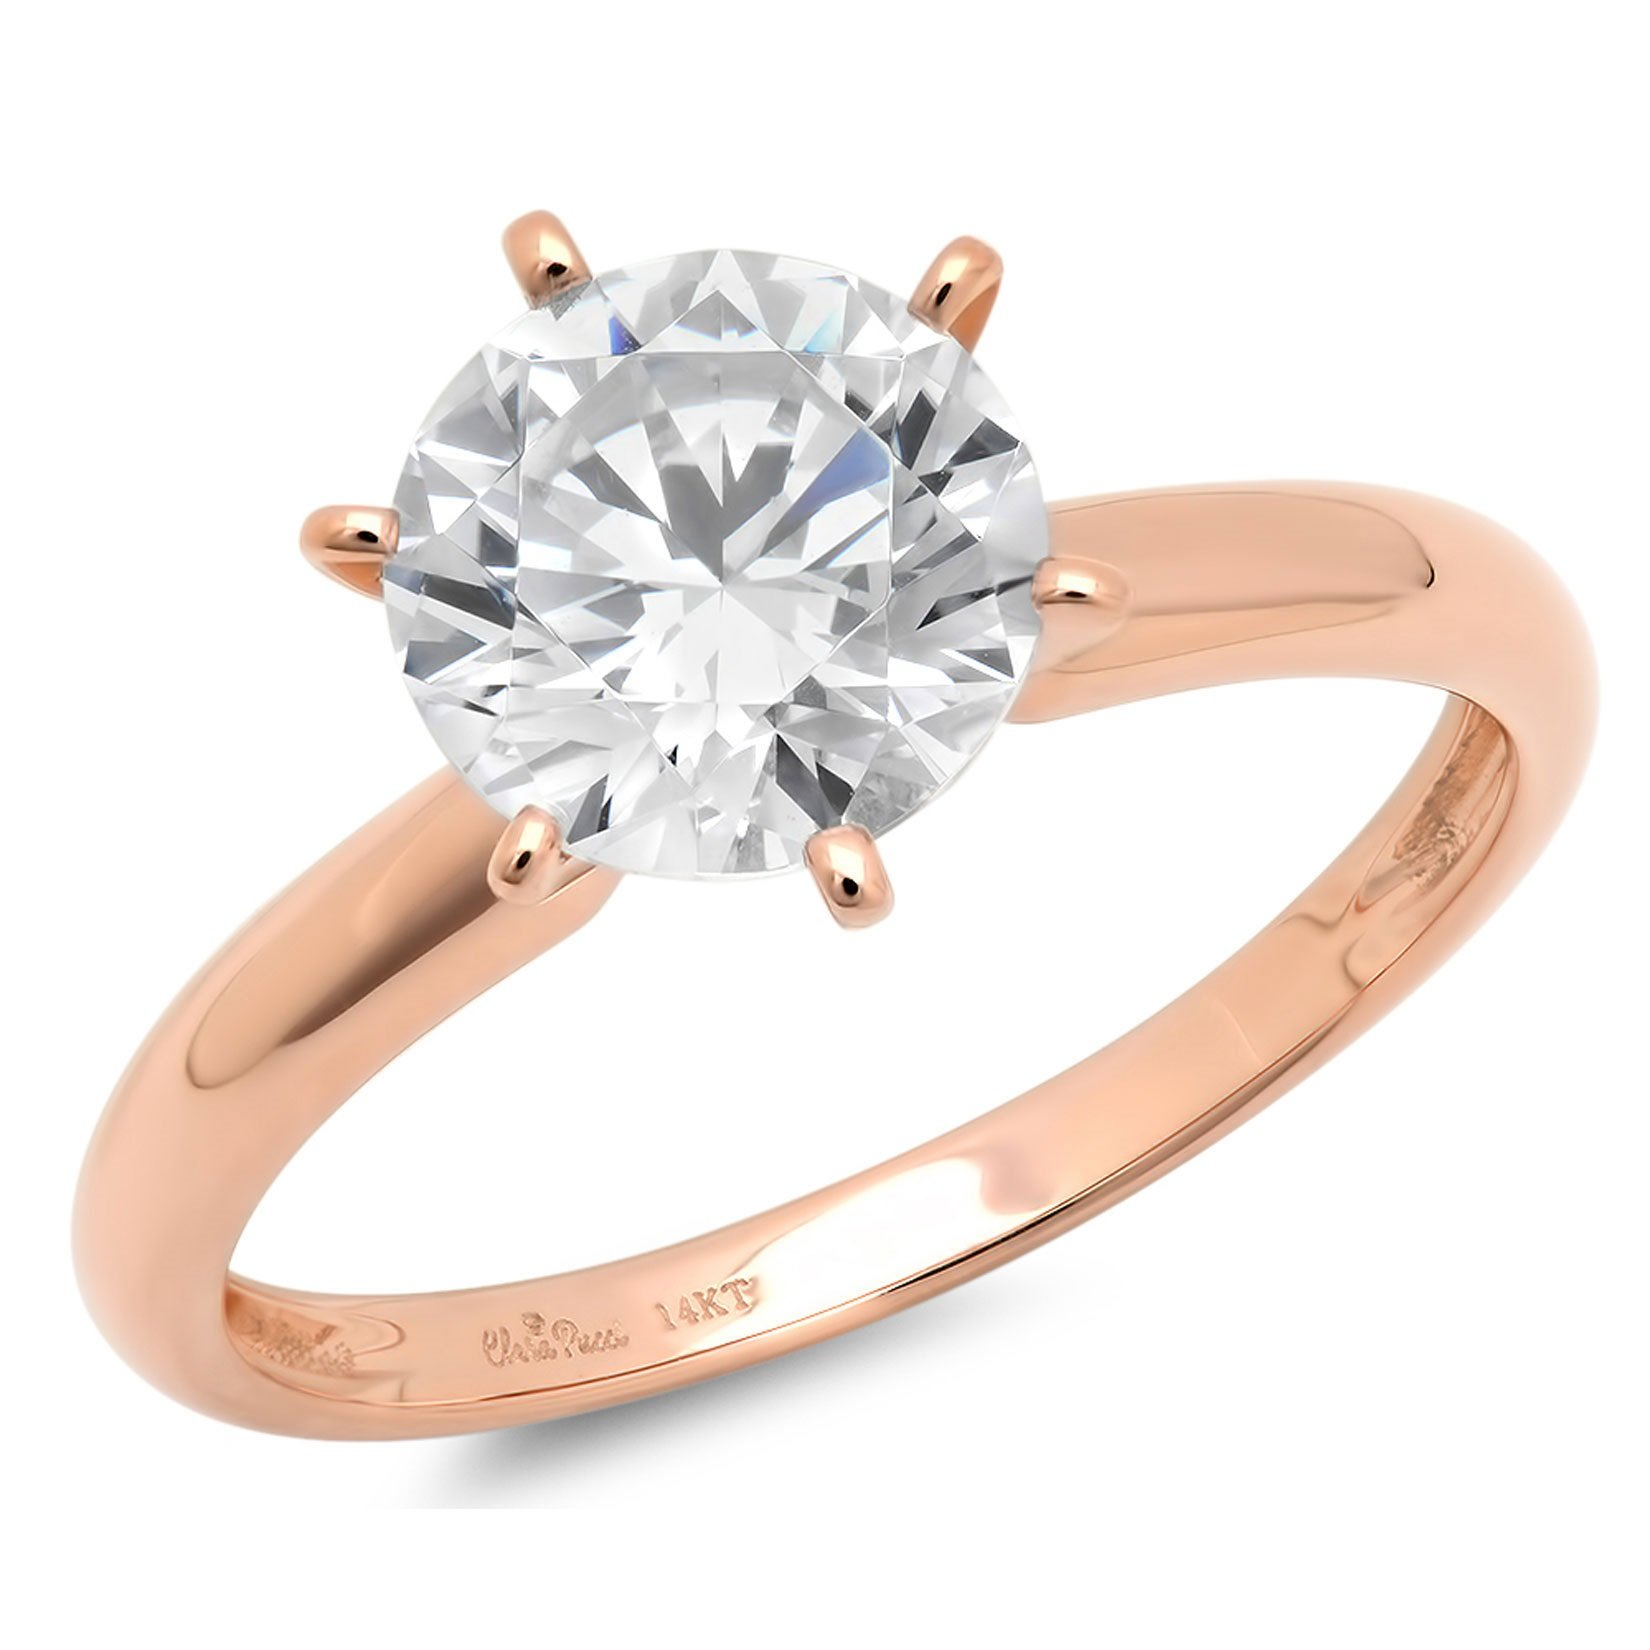 3.0 ct Brilliant Round Cut Solitaire Highest Quality moissanite Engagement Wedding Bridal Promise Anniversary Ring in Solid Real 14k Rose Gold for Women